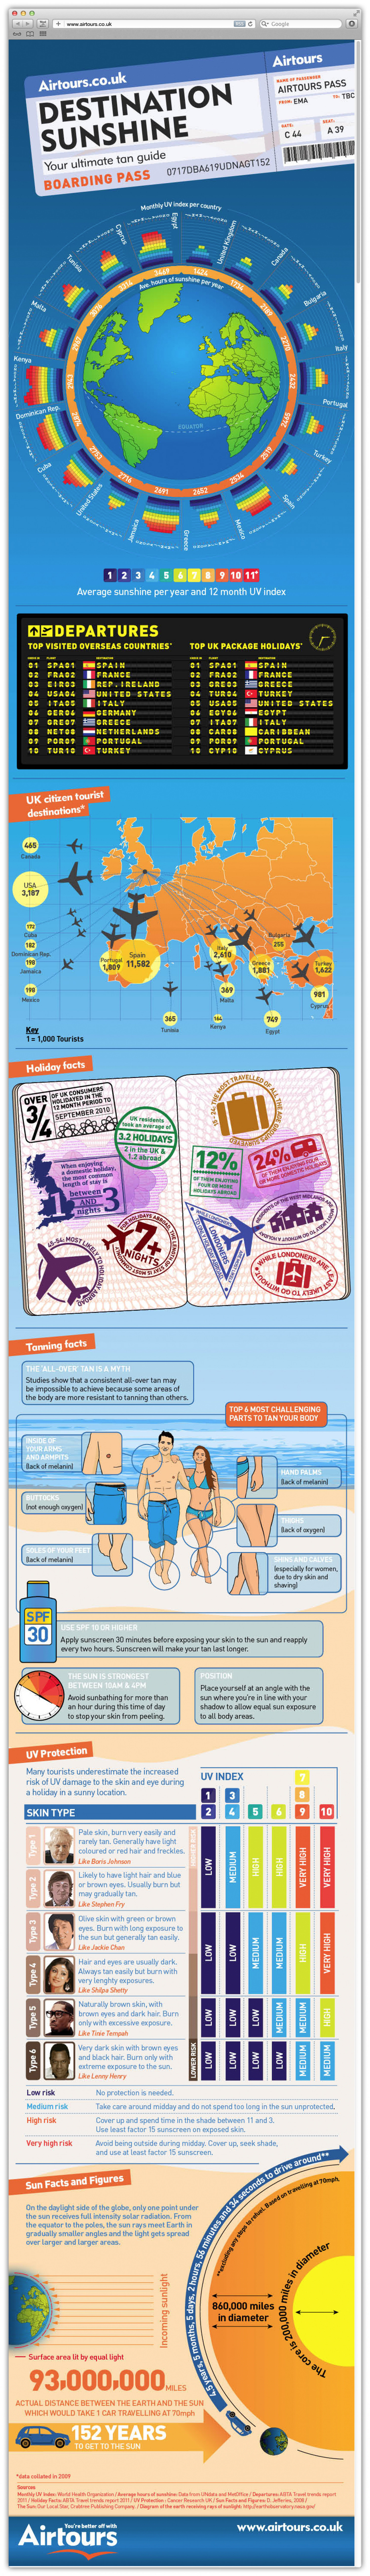 Destination Sunshine Infographic Infographic